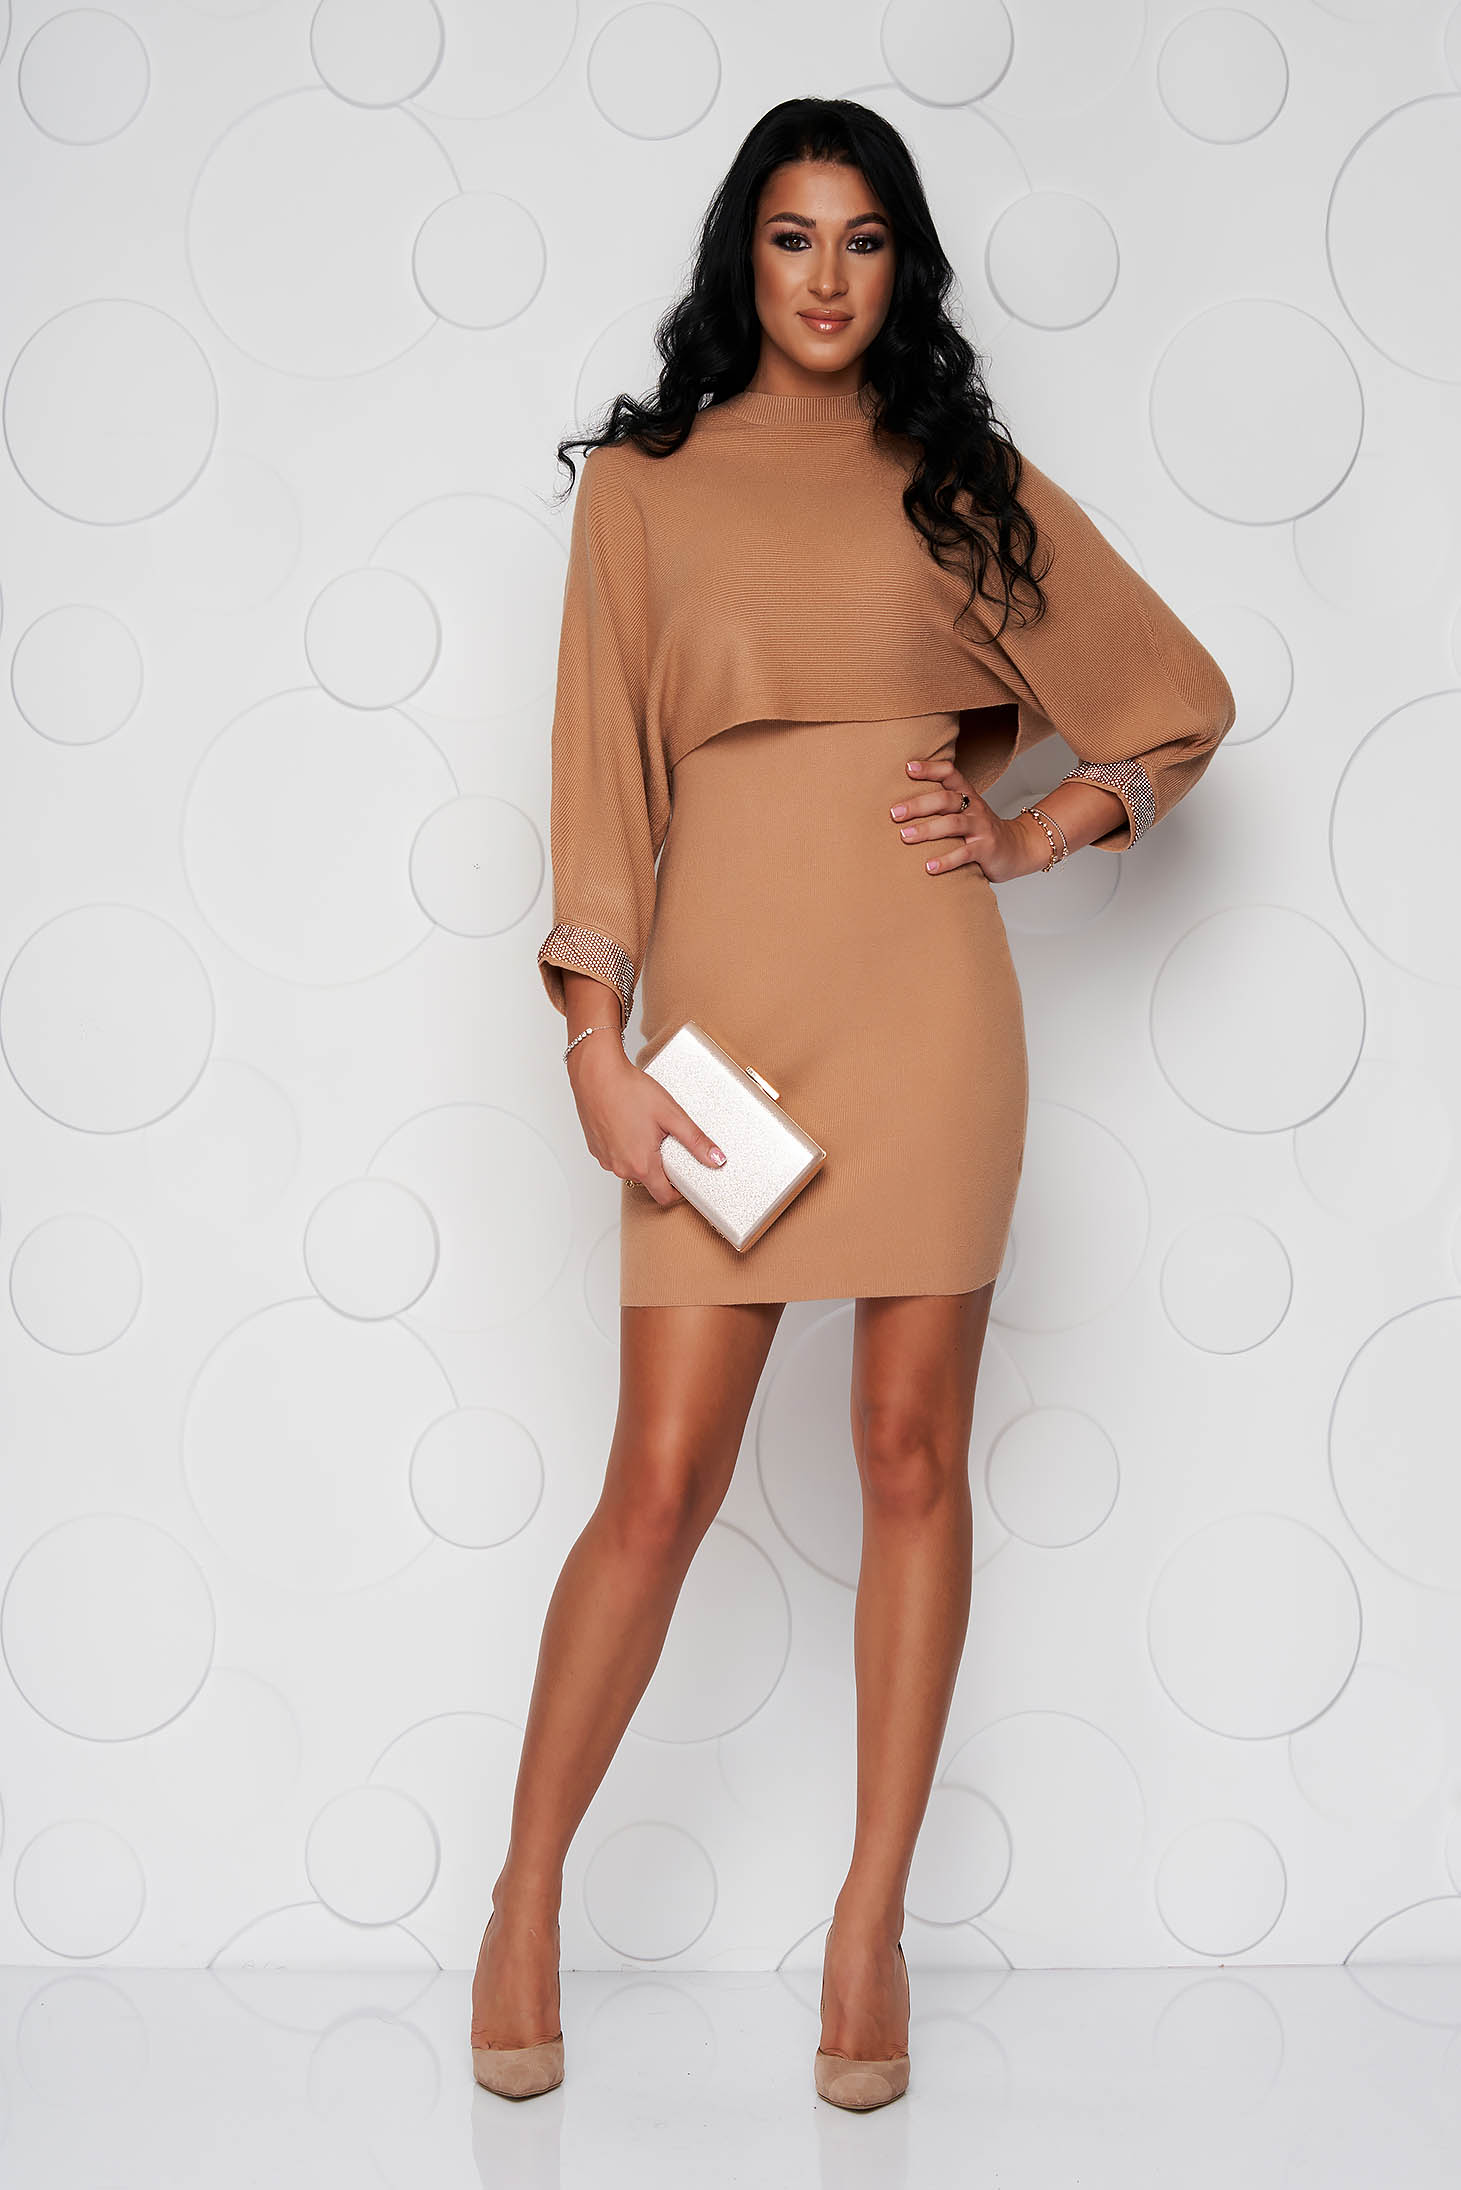 Brown dress with crystal embellished details knitted from elastic fabric long sleeve